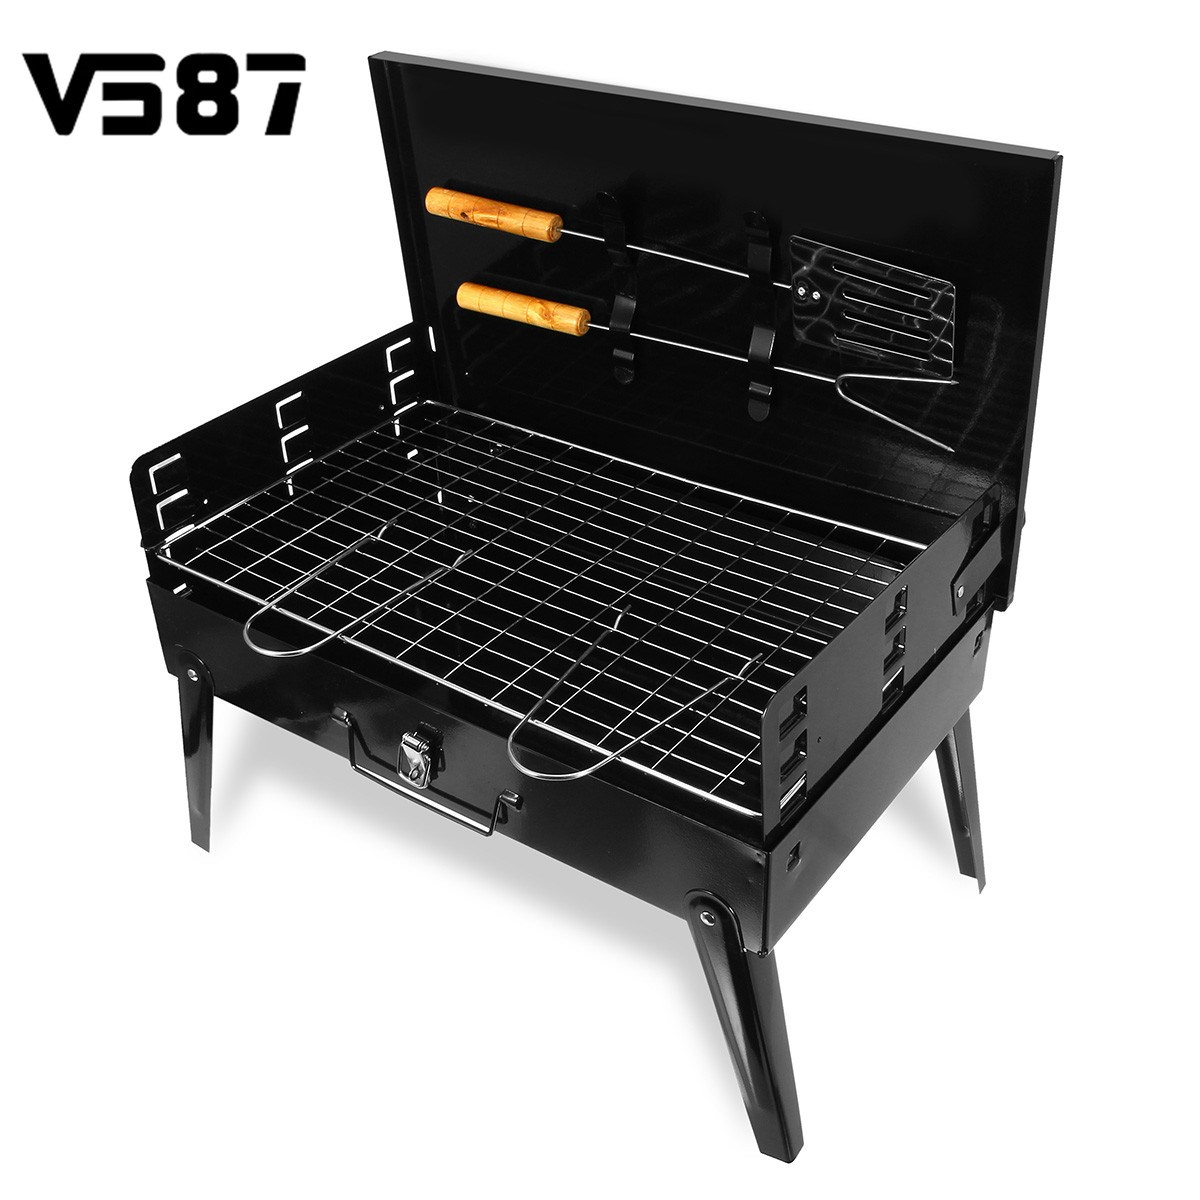 portable bbq barbecue grill folding camping charcoal stove garden tools outdoor kitchen cooking. Black Bedroom Furniture Sets. Home Design Ideas